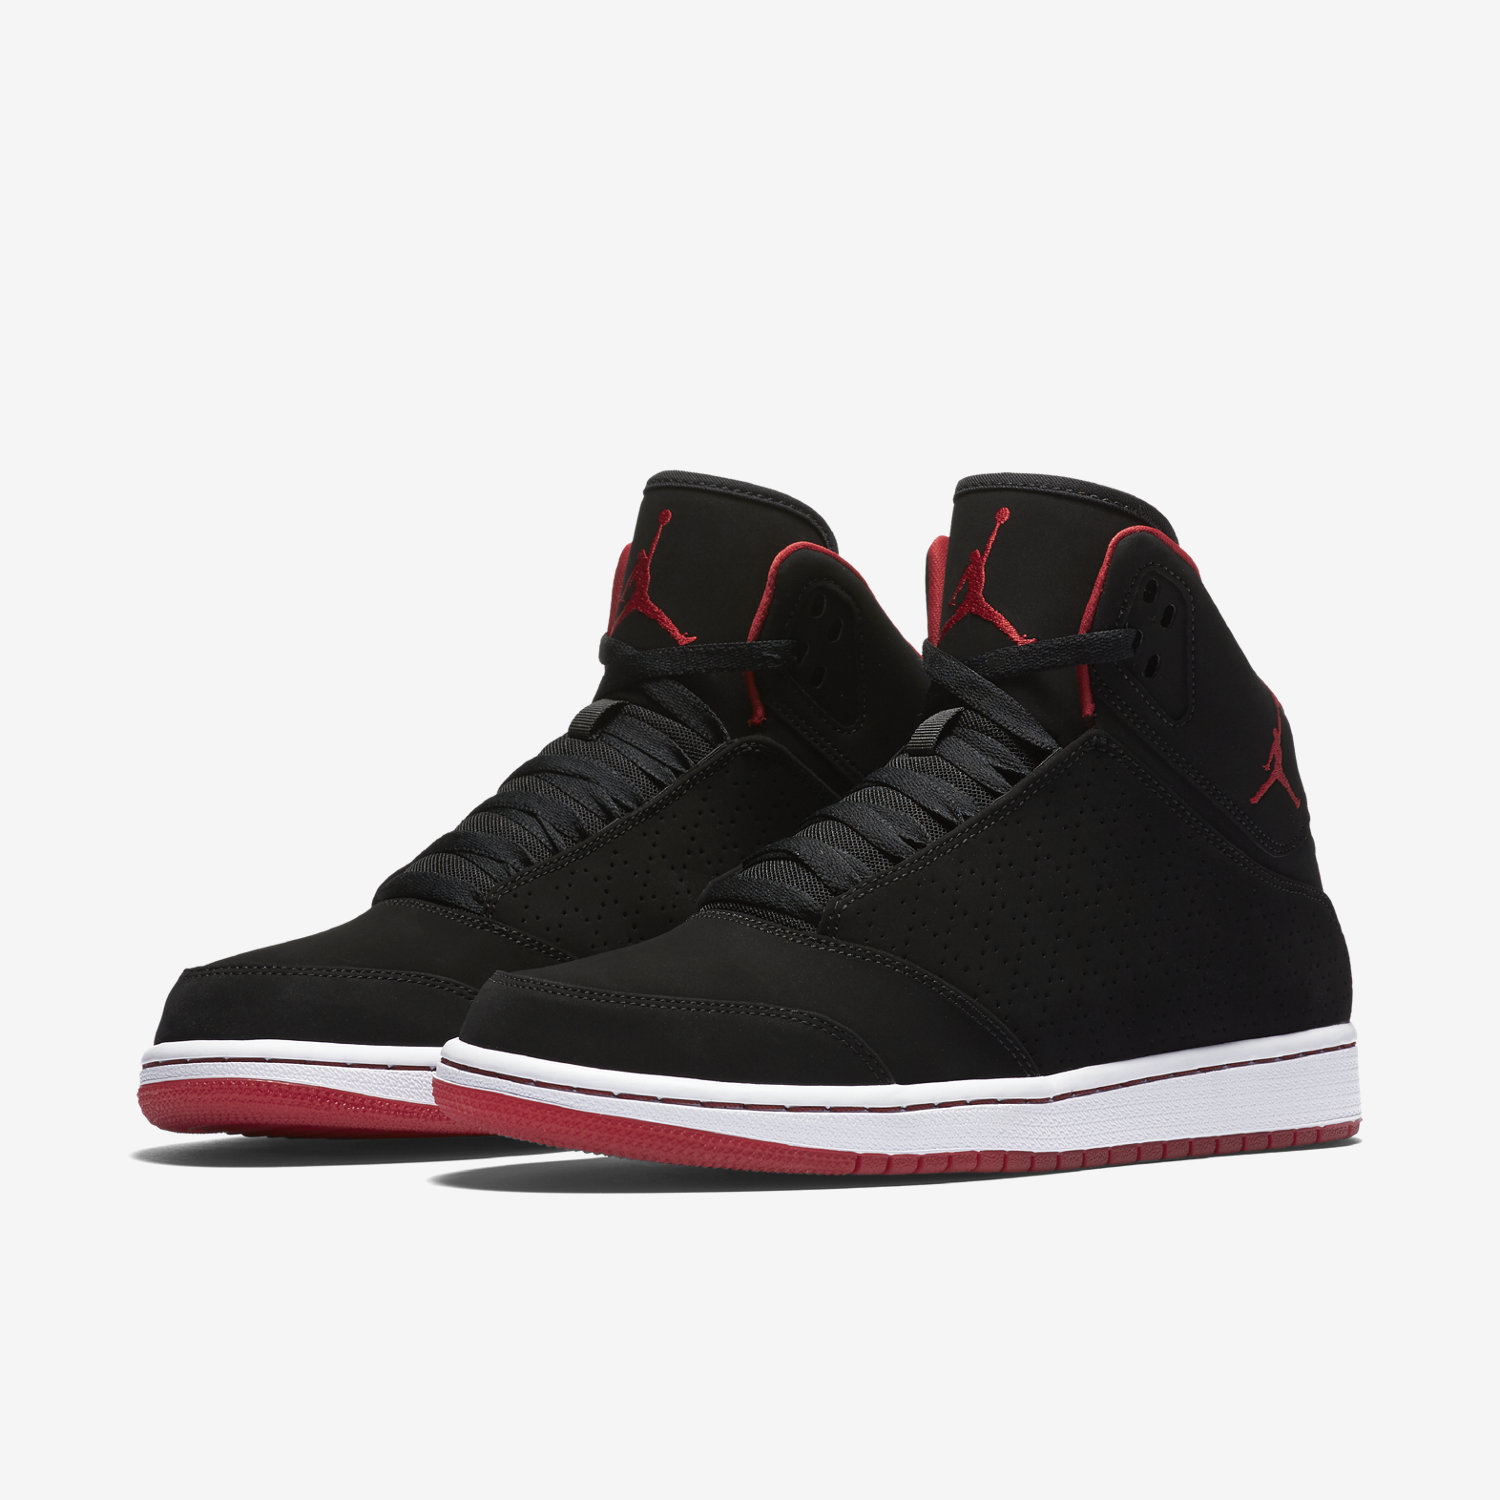 jordan one flight